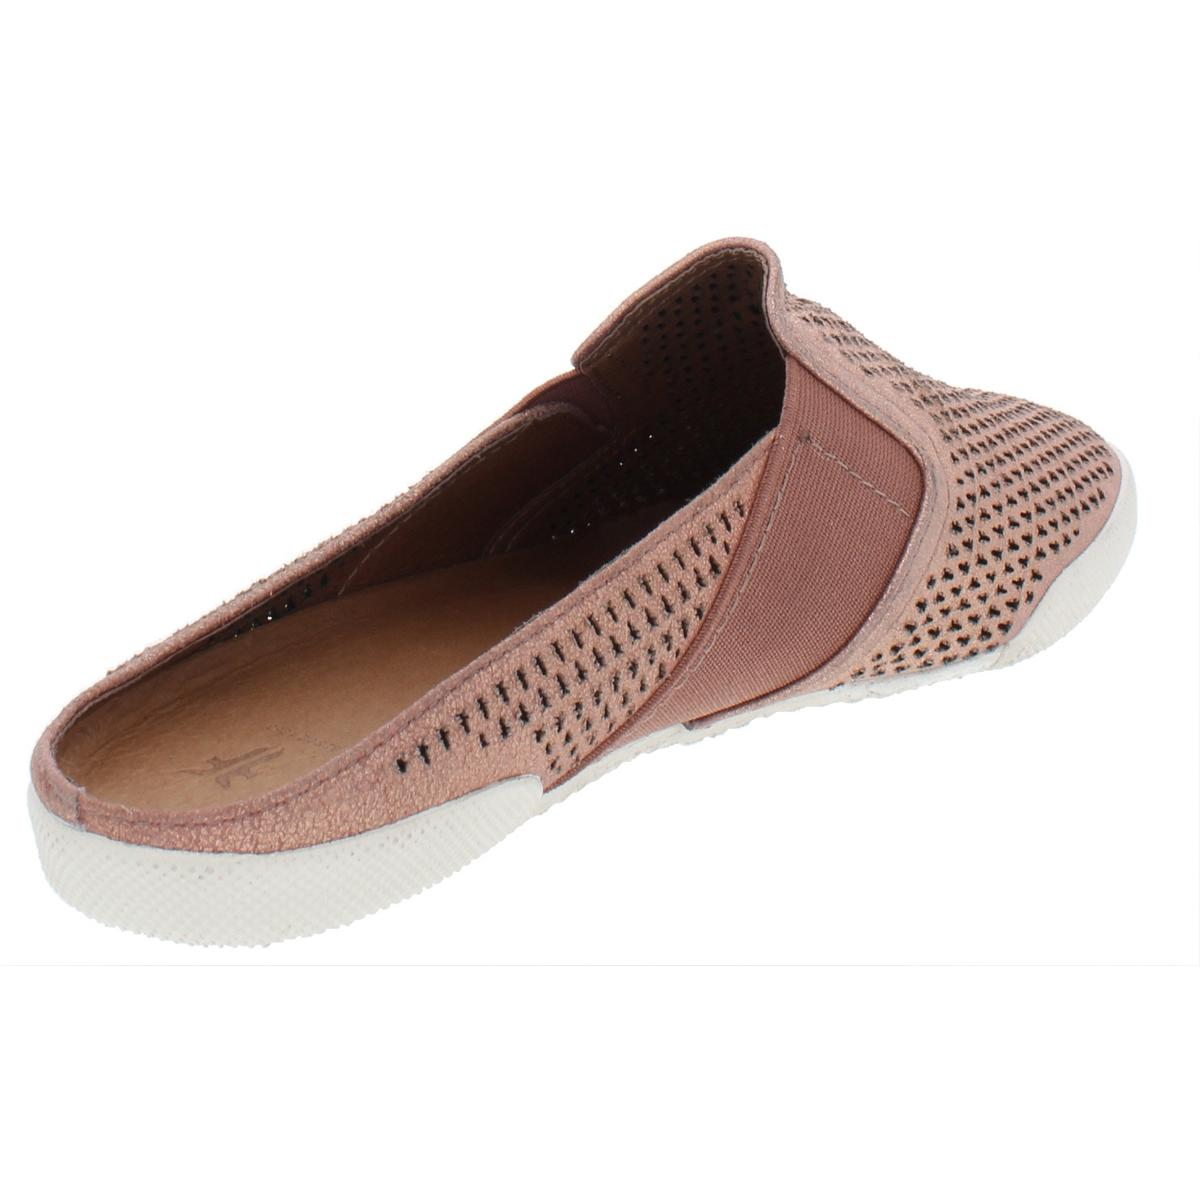 Frye-Womens-Melanie-Perforated-Suede-Flats-Mules-Shoes-BHFO-5179 thumbnail 4